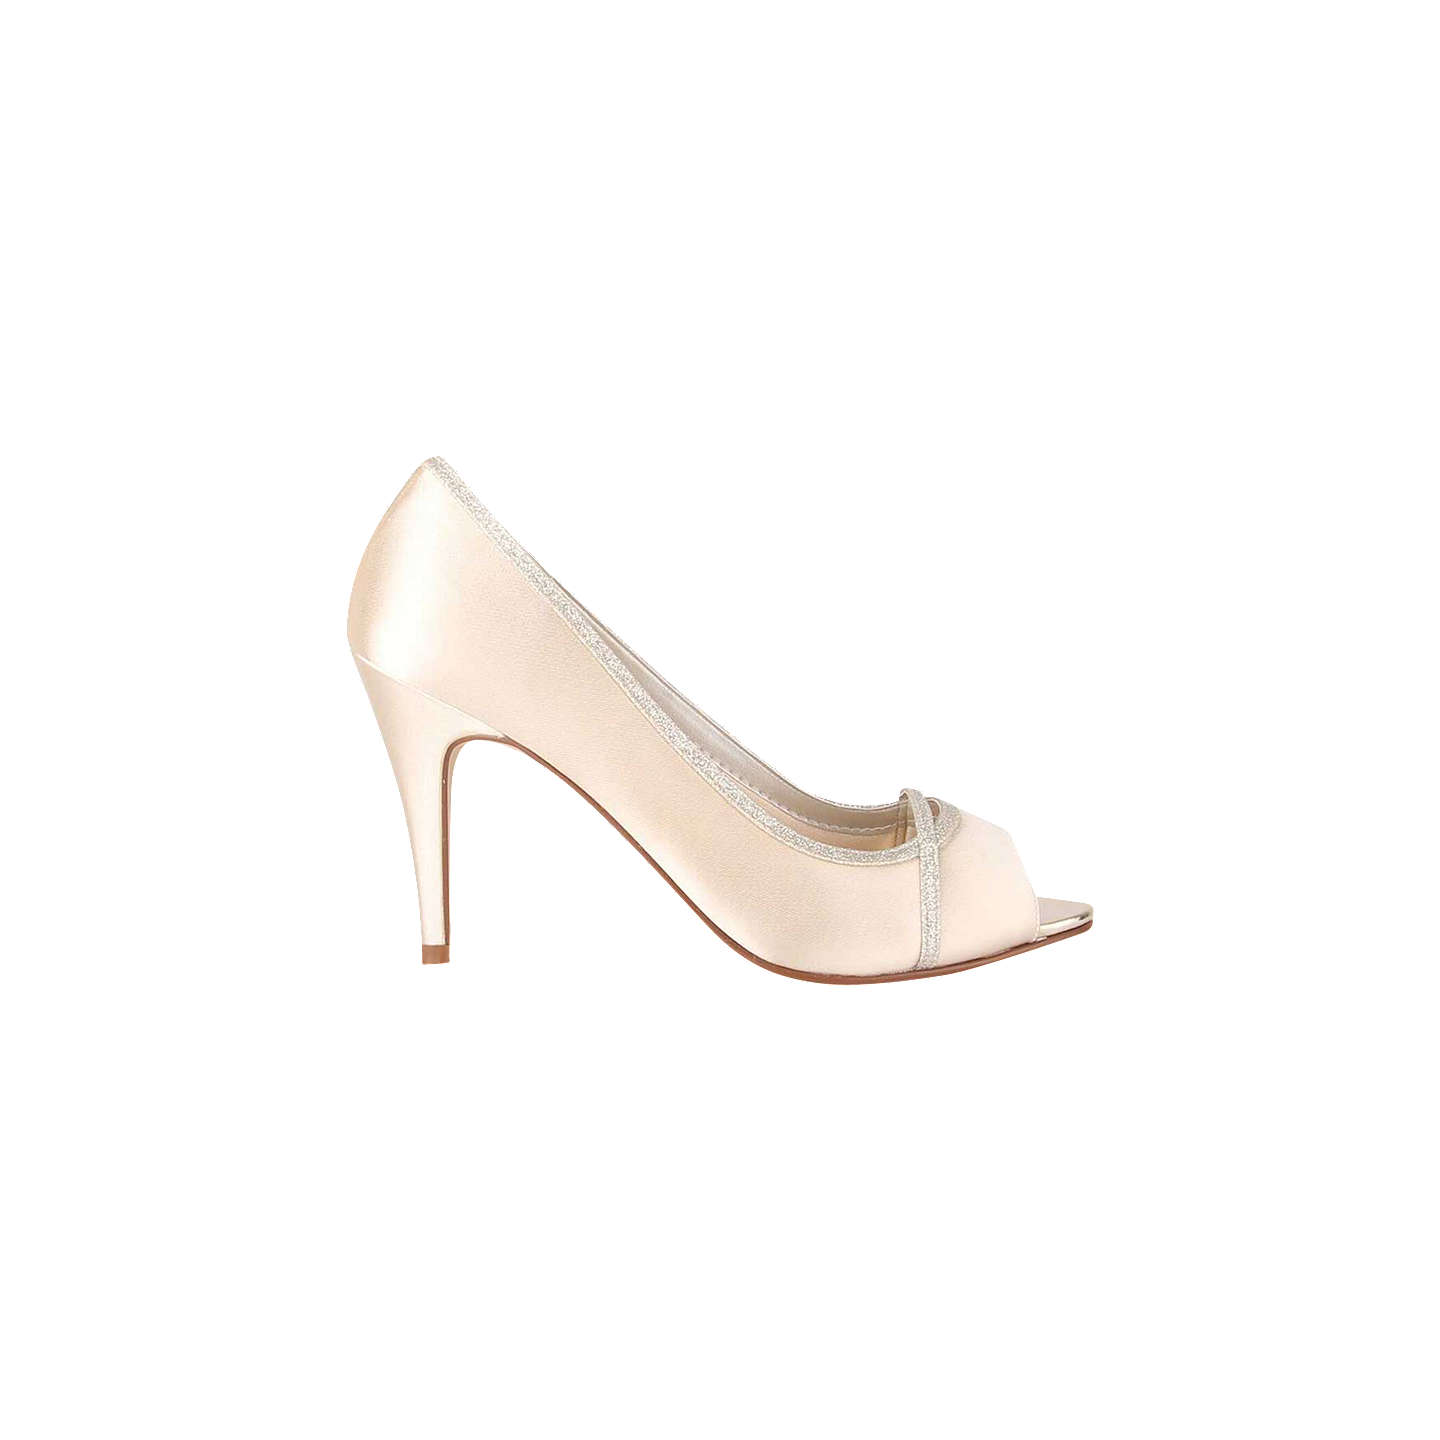 BuyRainbow Club Chelsey Peep Toe Stiletto Sandals, Ivory, 3 Online at johnlewis.com